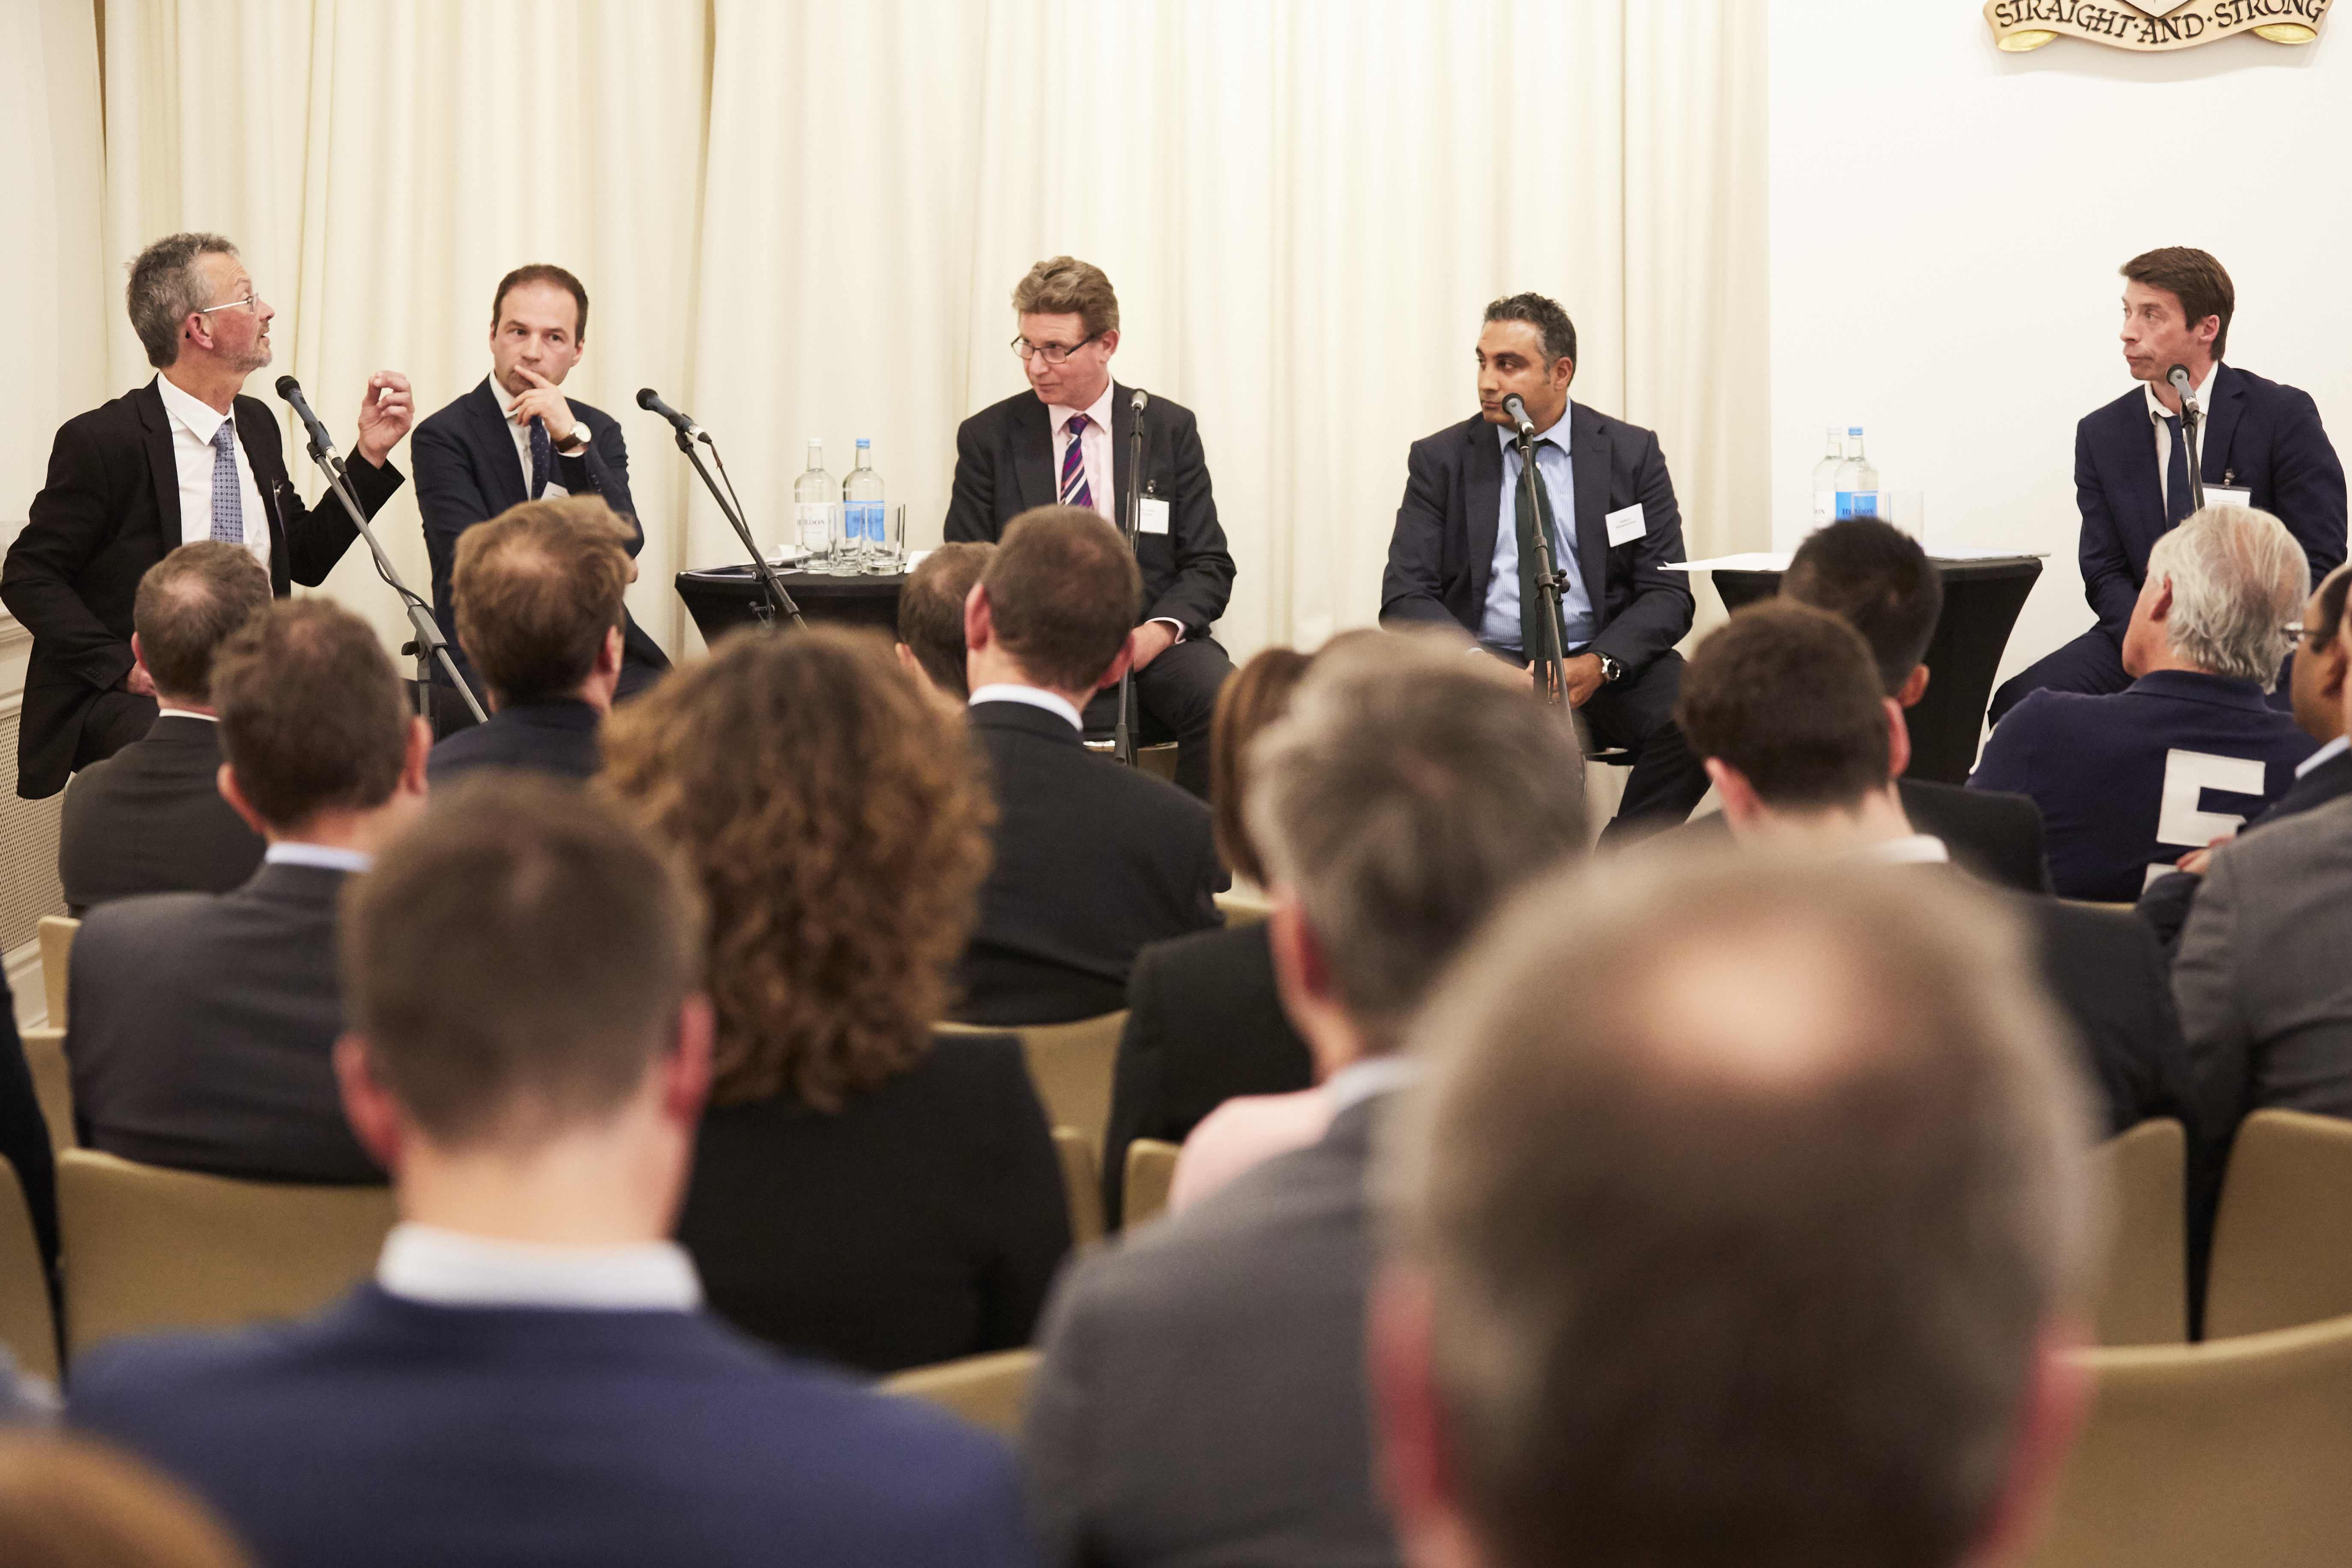 Data Panel: The battle for data ownership (Chaired by Bob Currie, Research Editor, Funds Europe, picured far left)